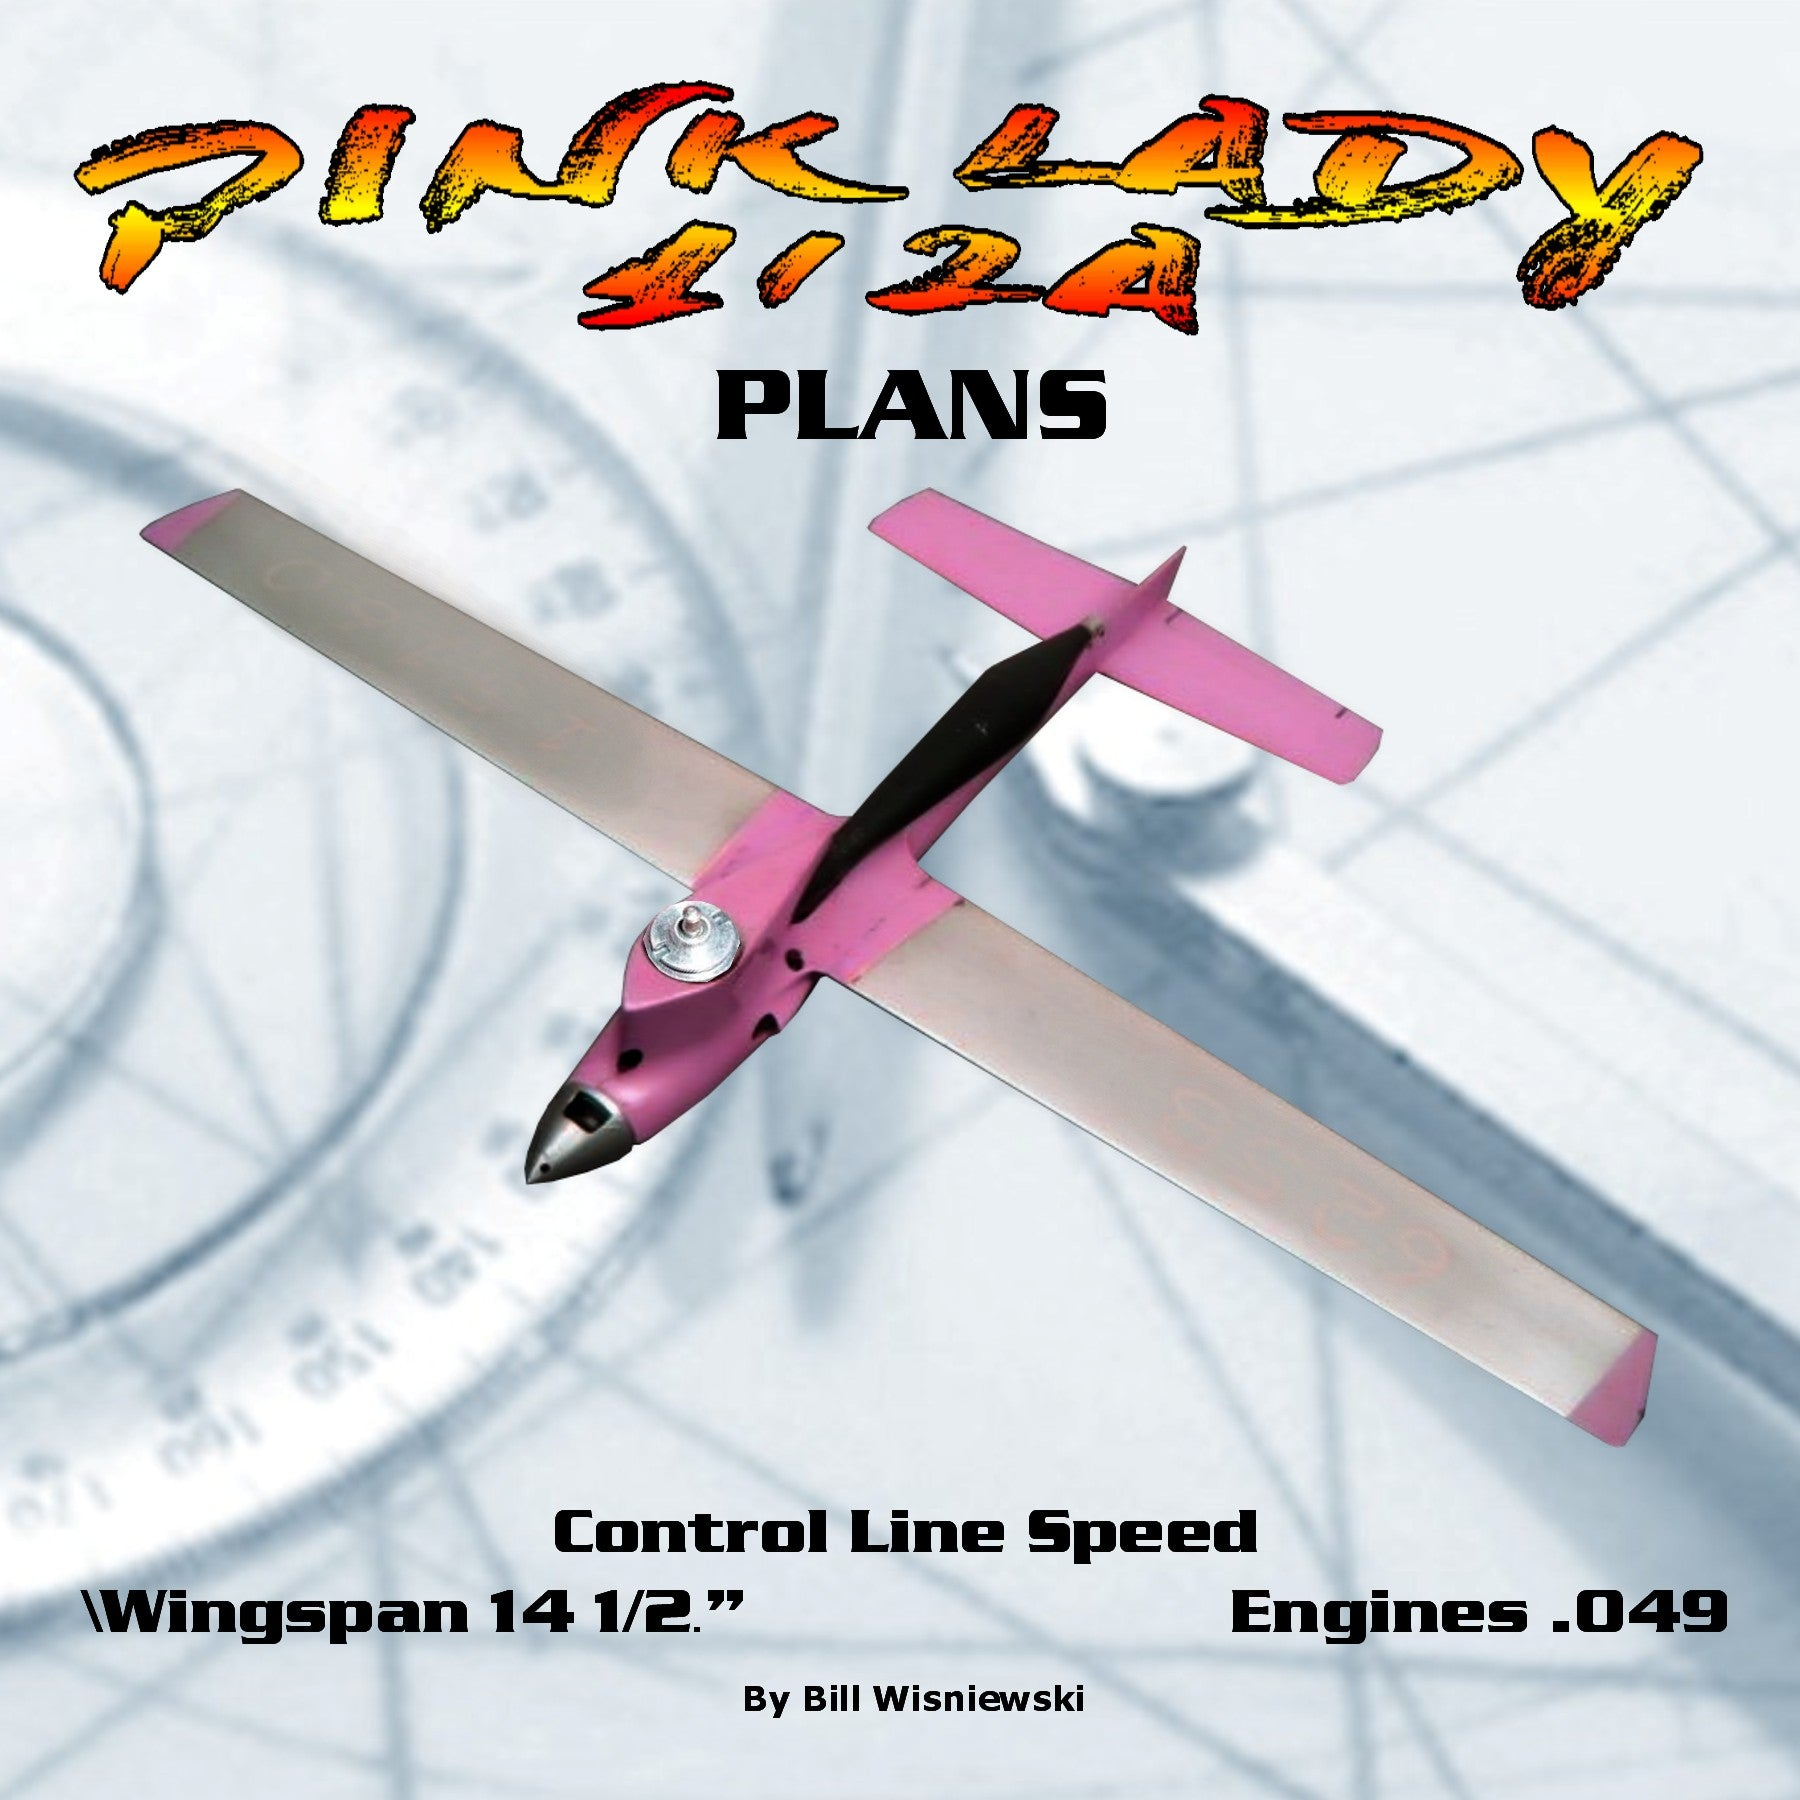 FULL SIZE PLANS CONTROL LINE SPEED PINK LADY  CLASS  ½ A WINGSPAN 14 1/2""